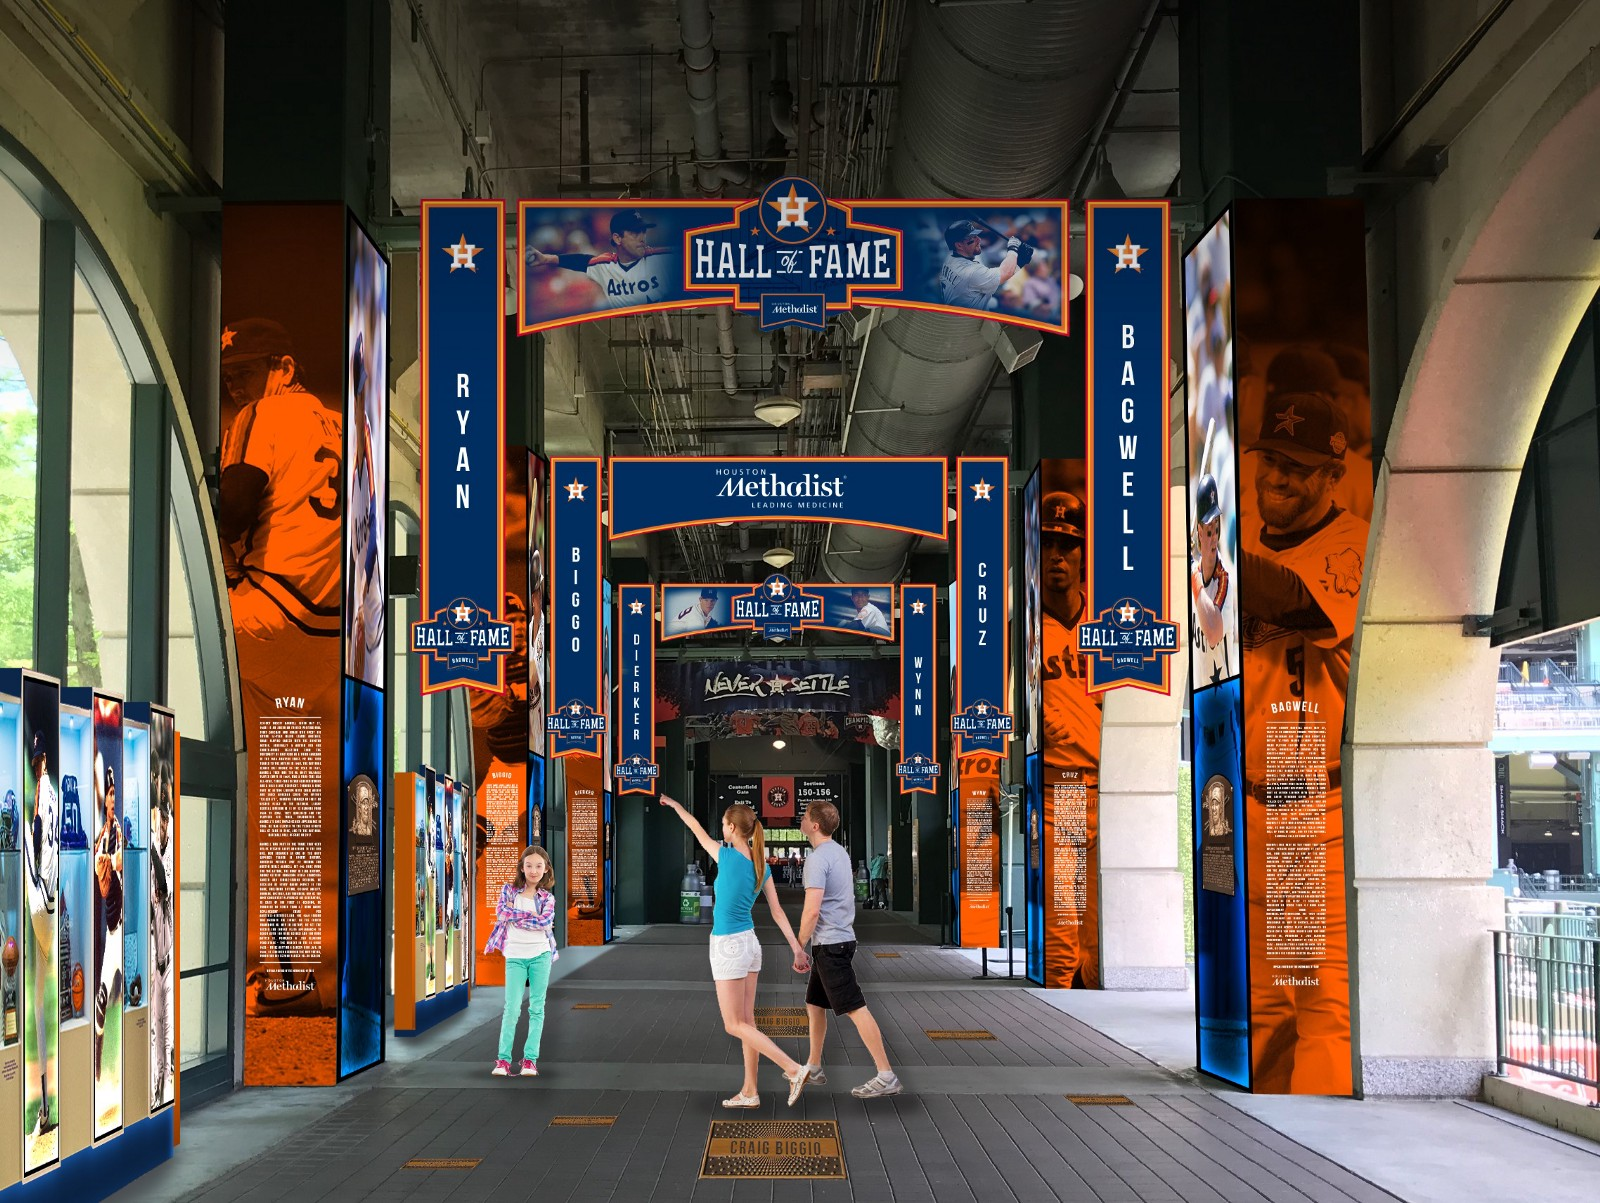 ecf50c677a8 Astros reveal full details of new Astros Hall Of Fame presented by Houston  Methodist